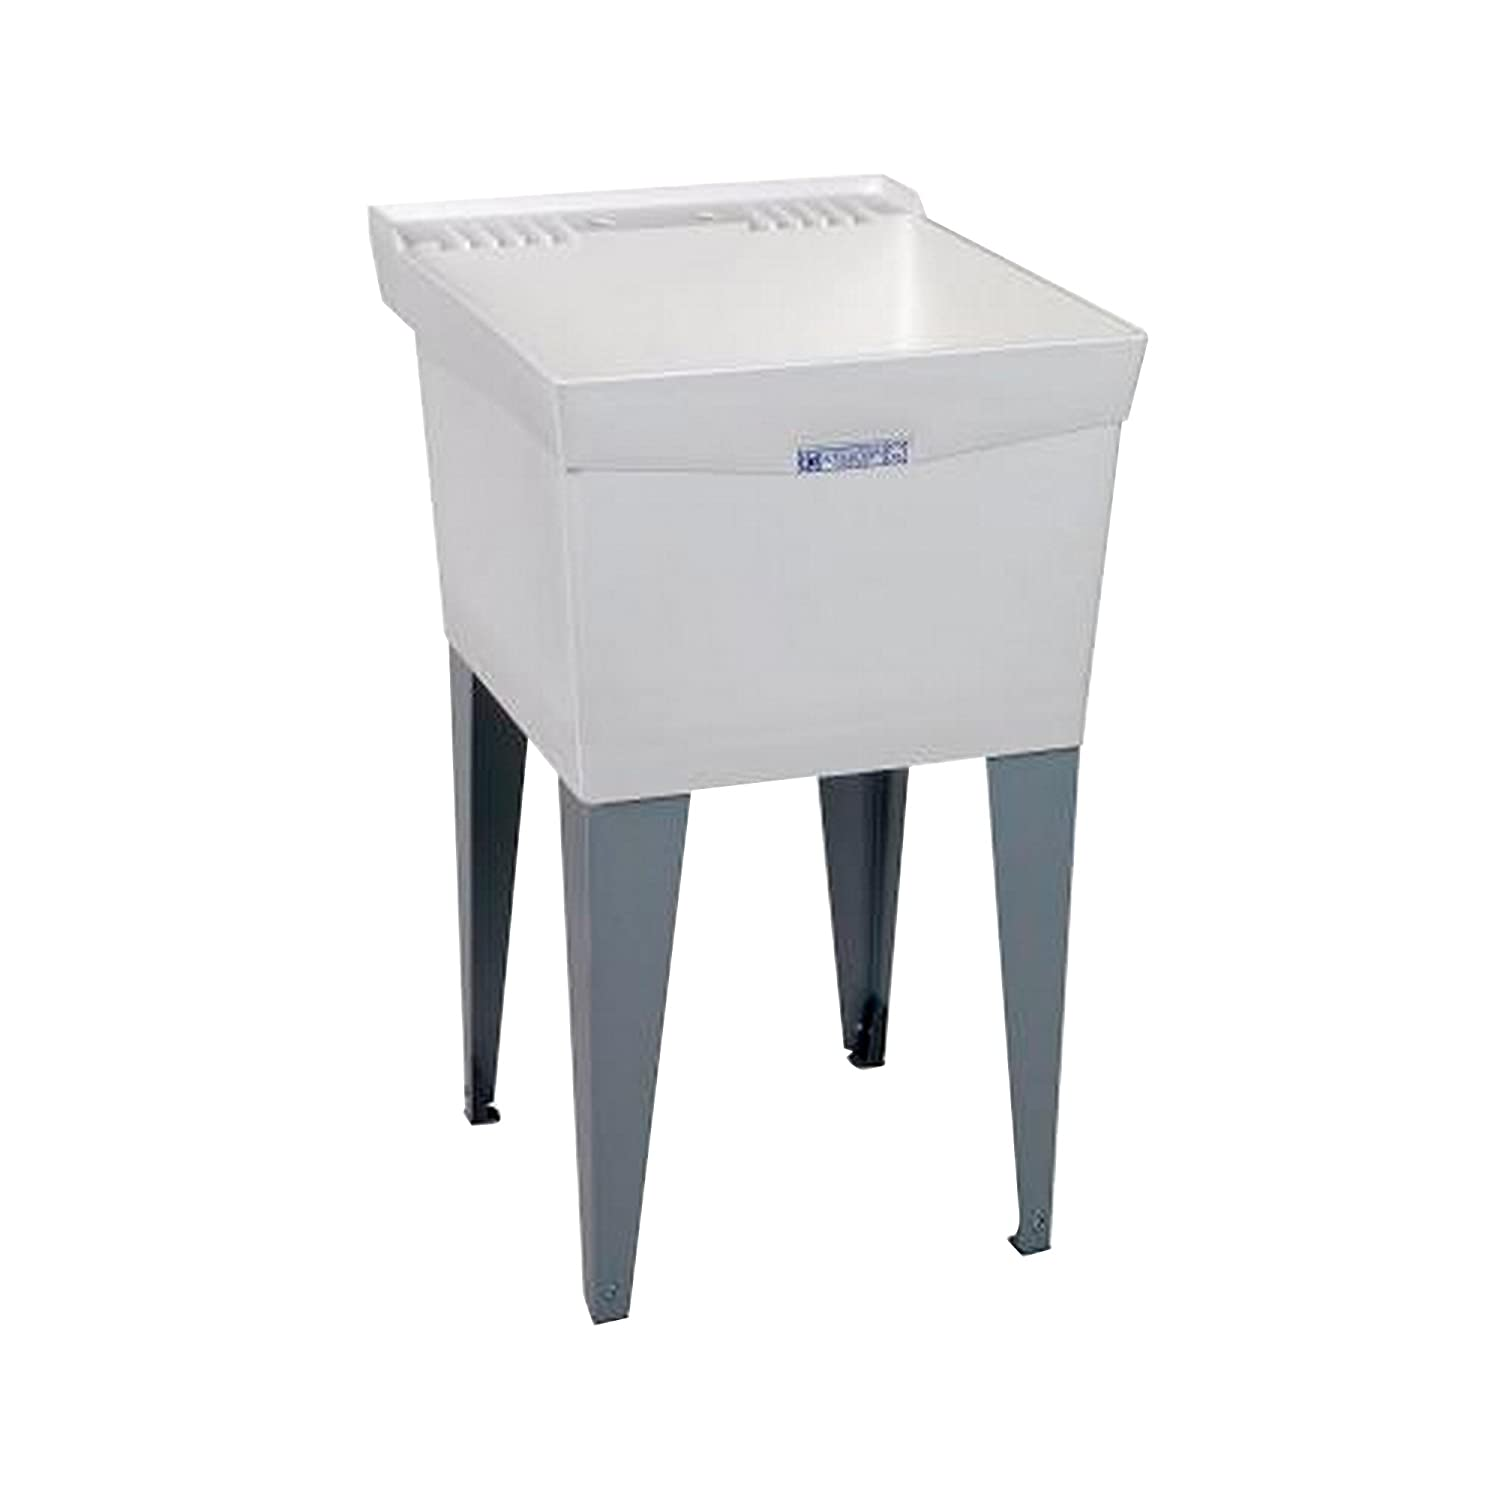 Charming Mustee 19F Utilatub Laundry Tub Floor Mount, 24 Inch X 20 Inch, White   Utility  Sinks   Amazon.com